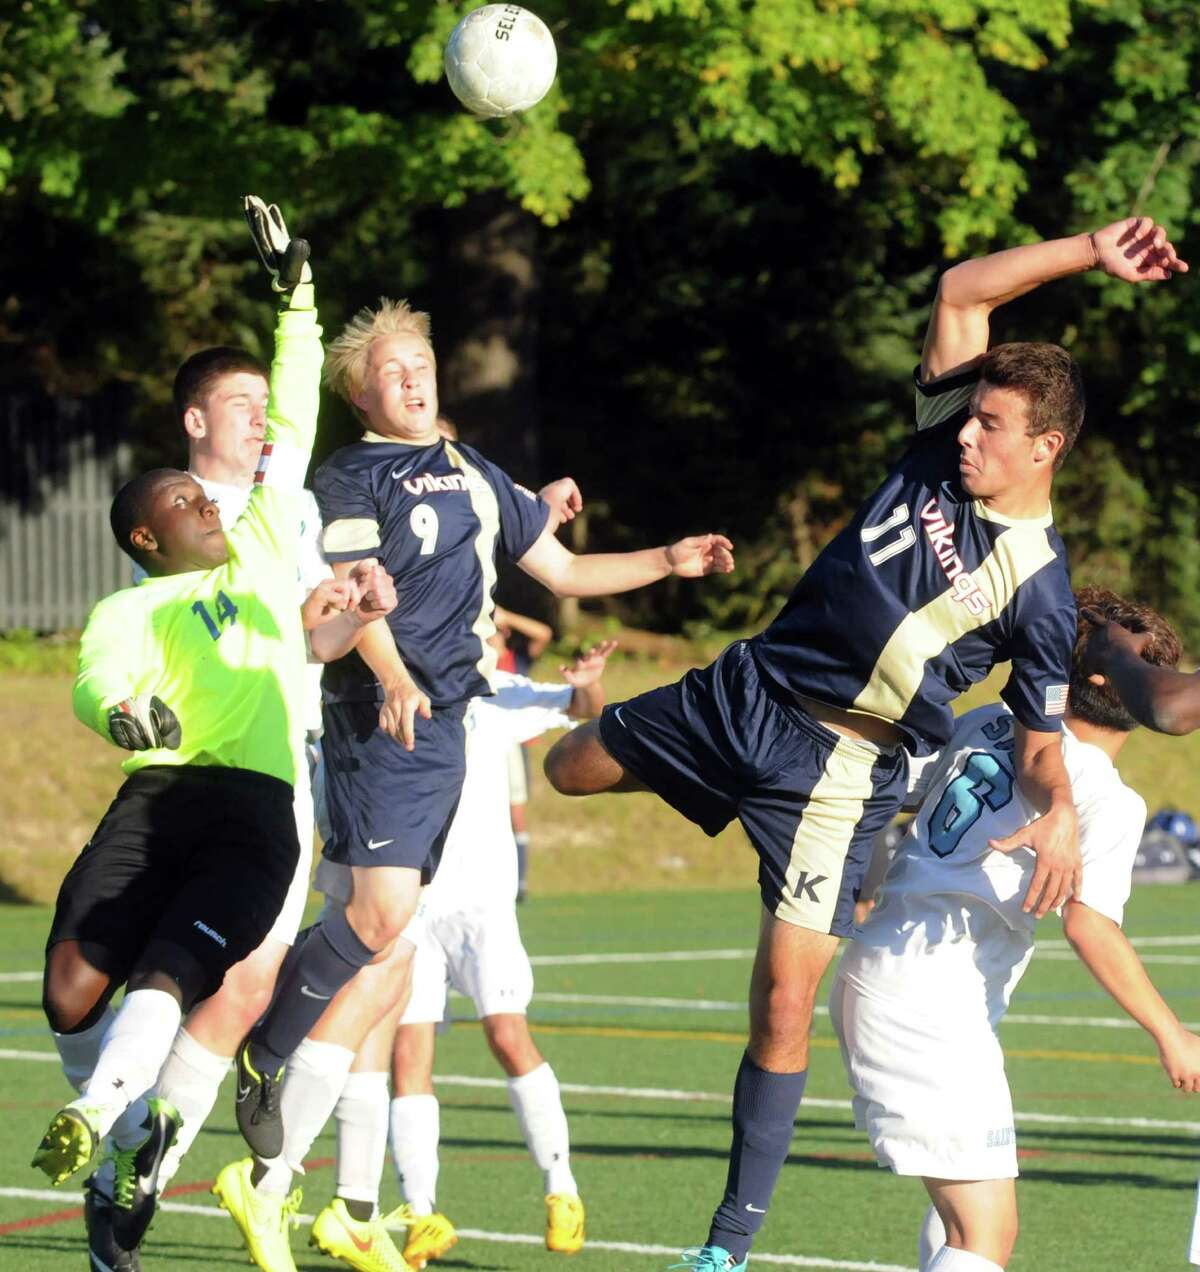 King's Alex Currie, center, and Jack Rozen collide with the Canterbury goalie Alec Astorga as King hosts Canterbury in Stamford, Conn., Sept. 23, 2014.